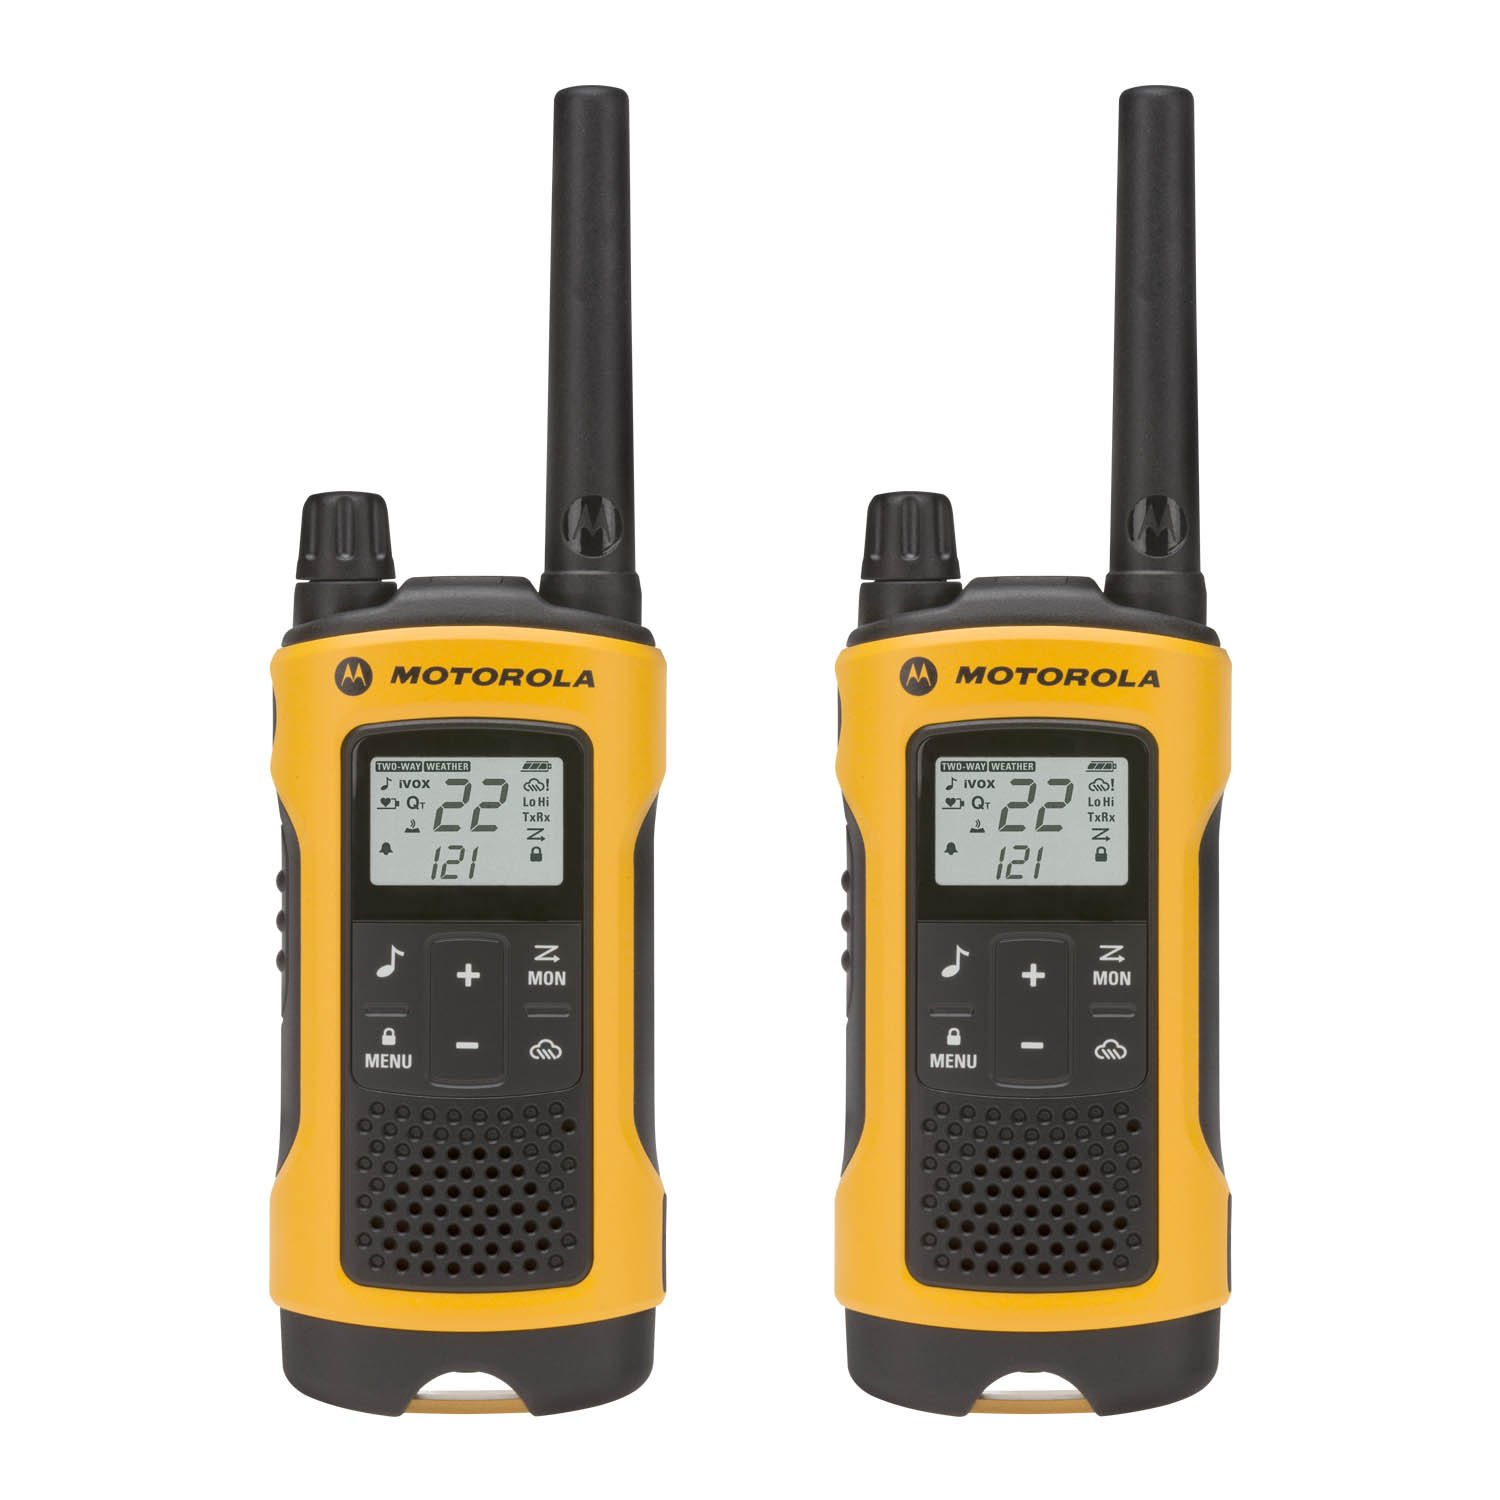 Motorola Talkabout T480 Emergency Preparedness Two-Way Radio